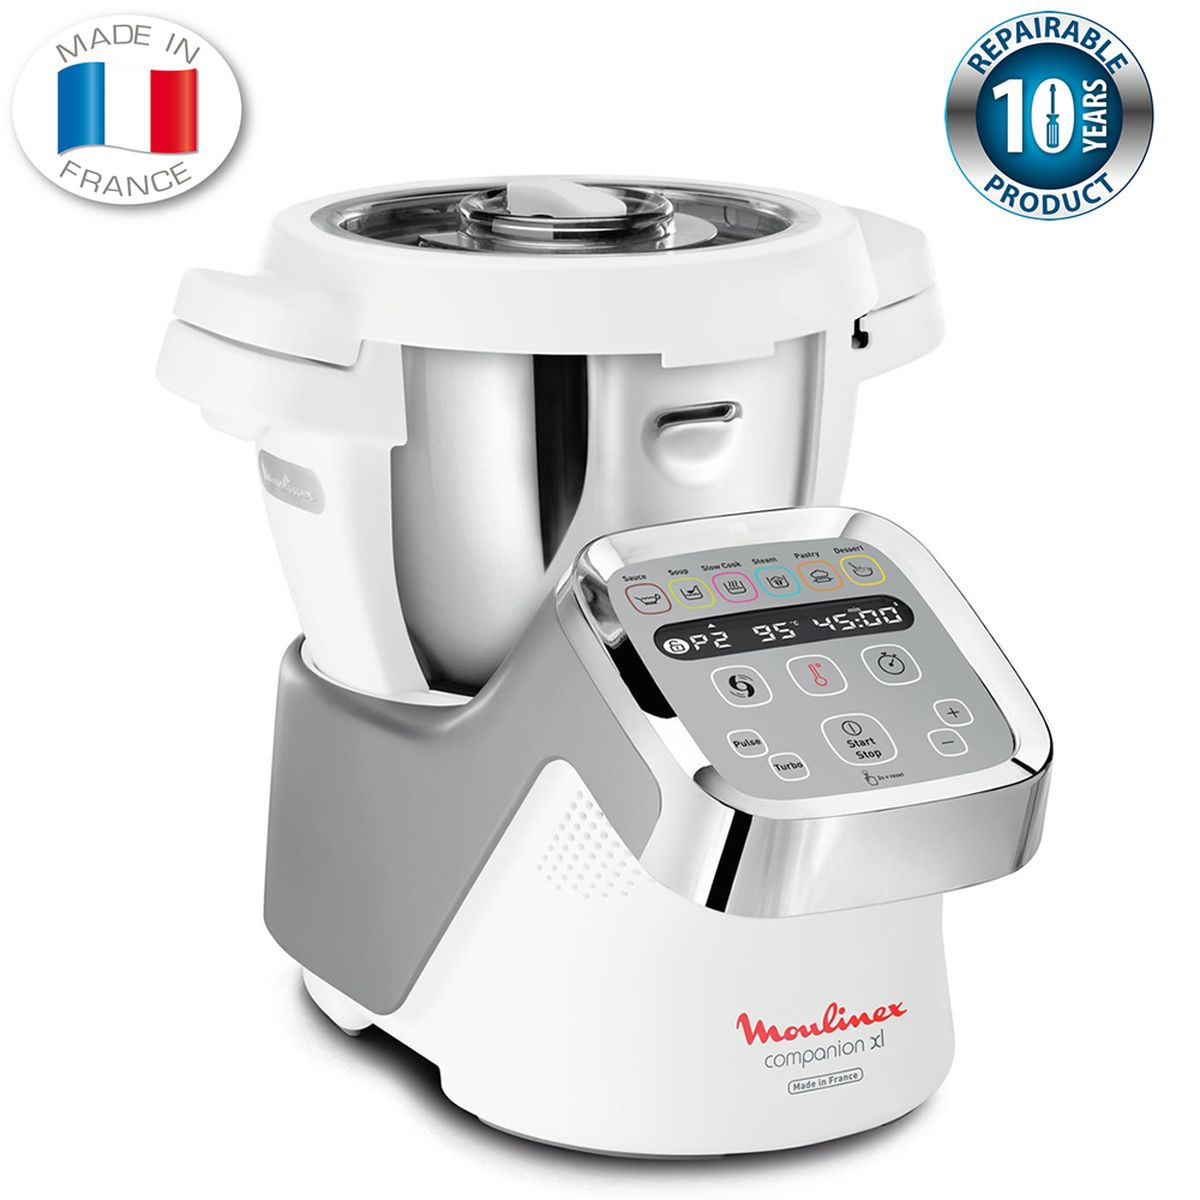 vente privee moulinex companion